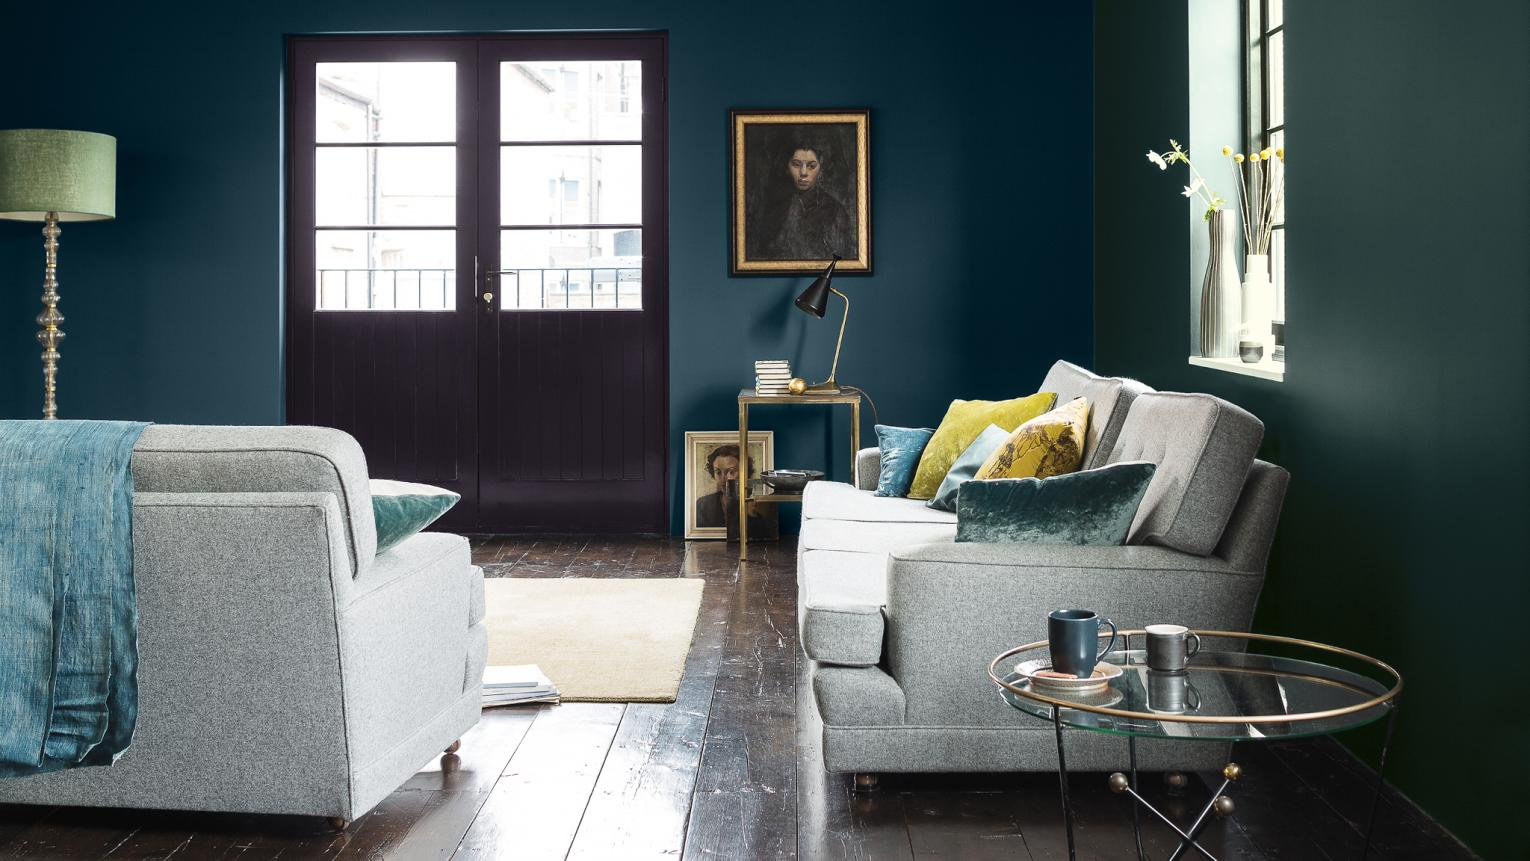 Dark Dulux Paint Colour Trends For A Chic New Home Interior And Exterior Colour Paints Decorating Ideas Dulux